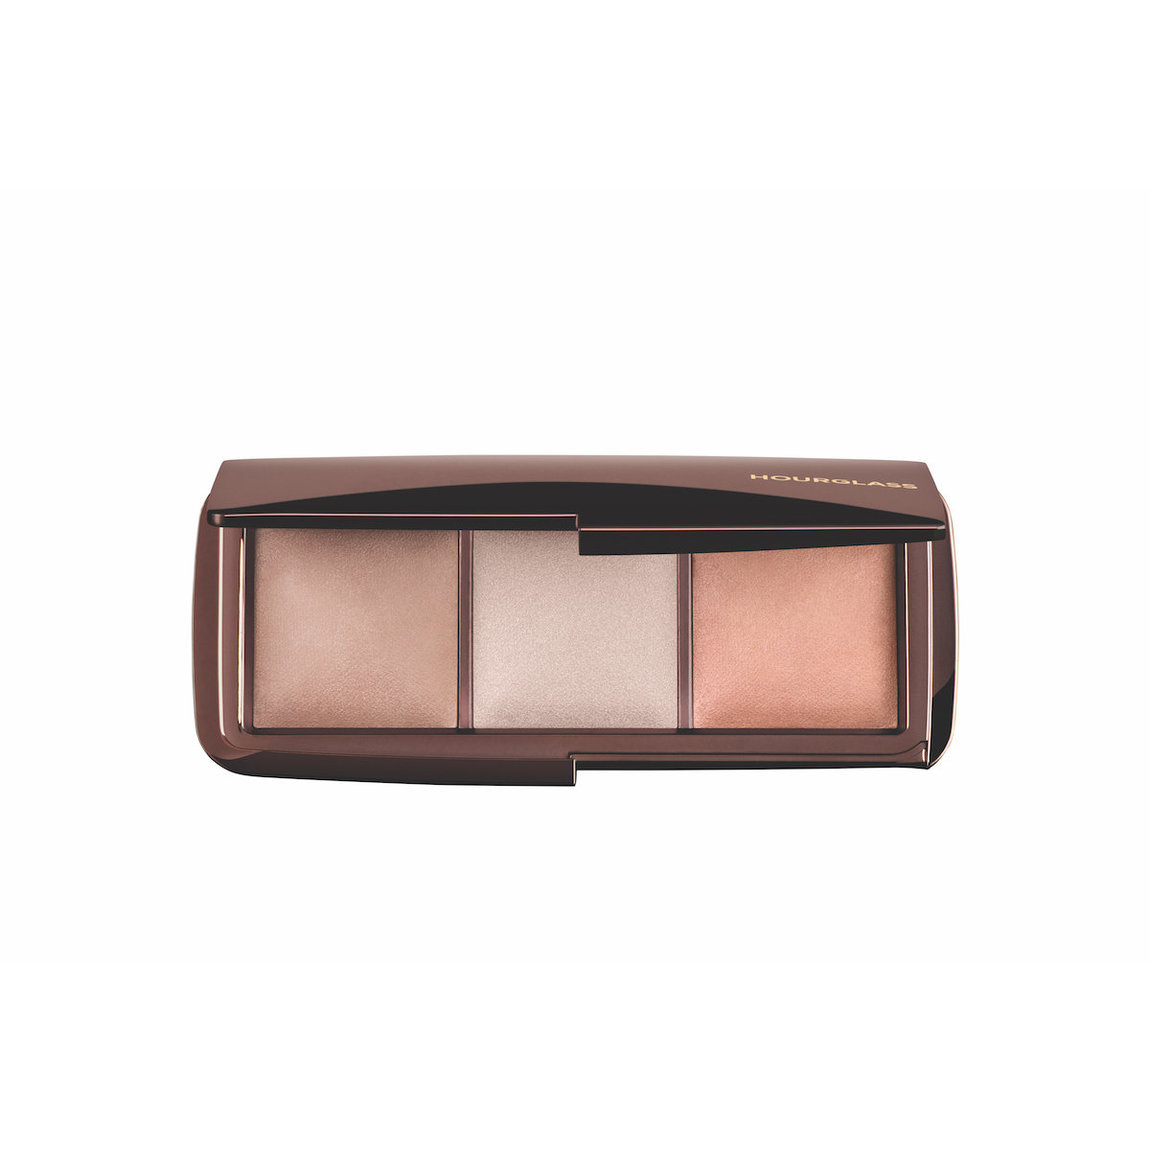 Hourglass Ambient Lighting Palette product smear.